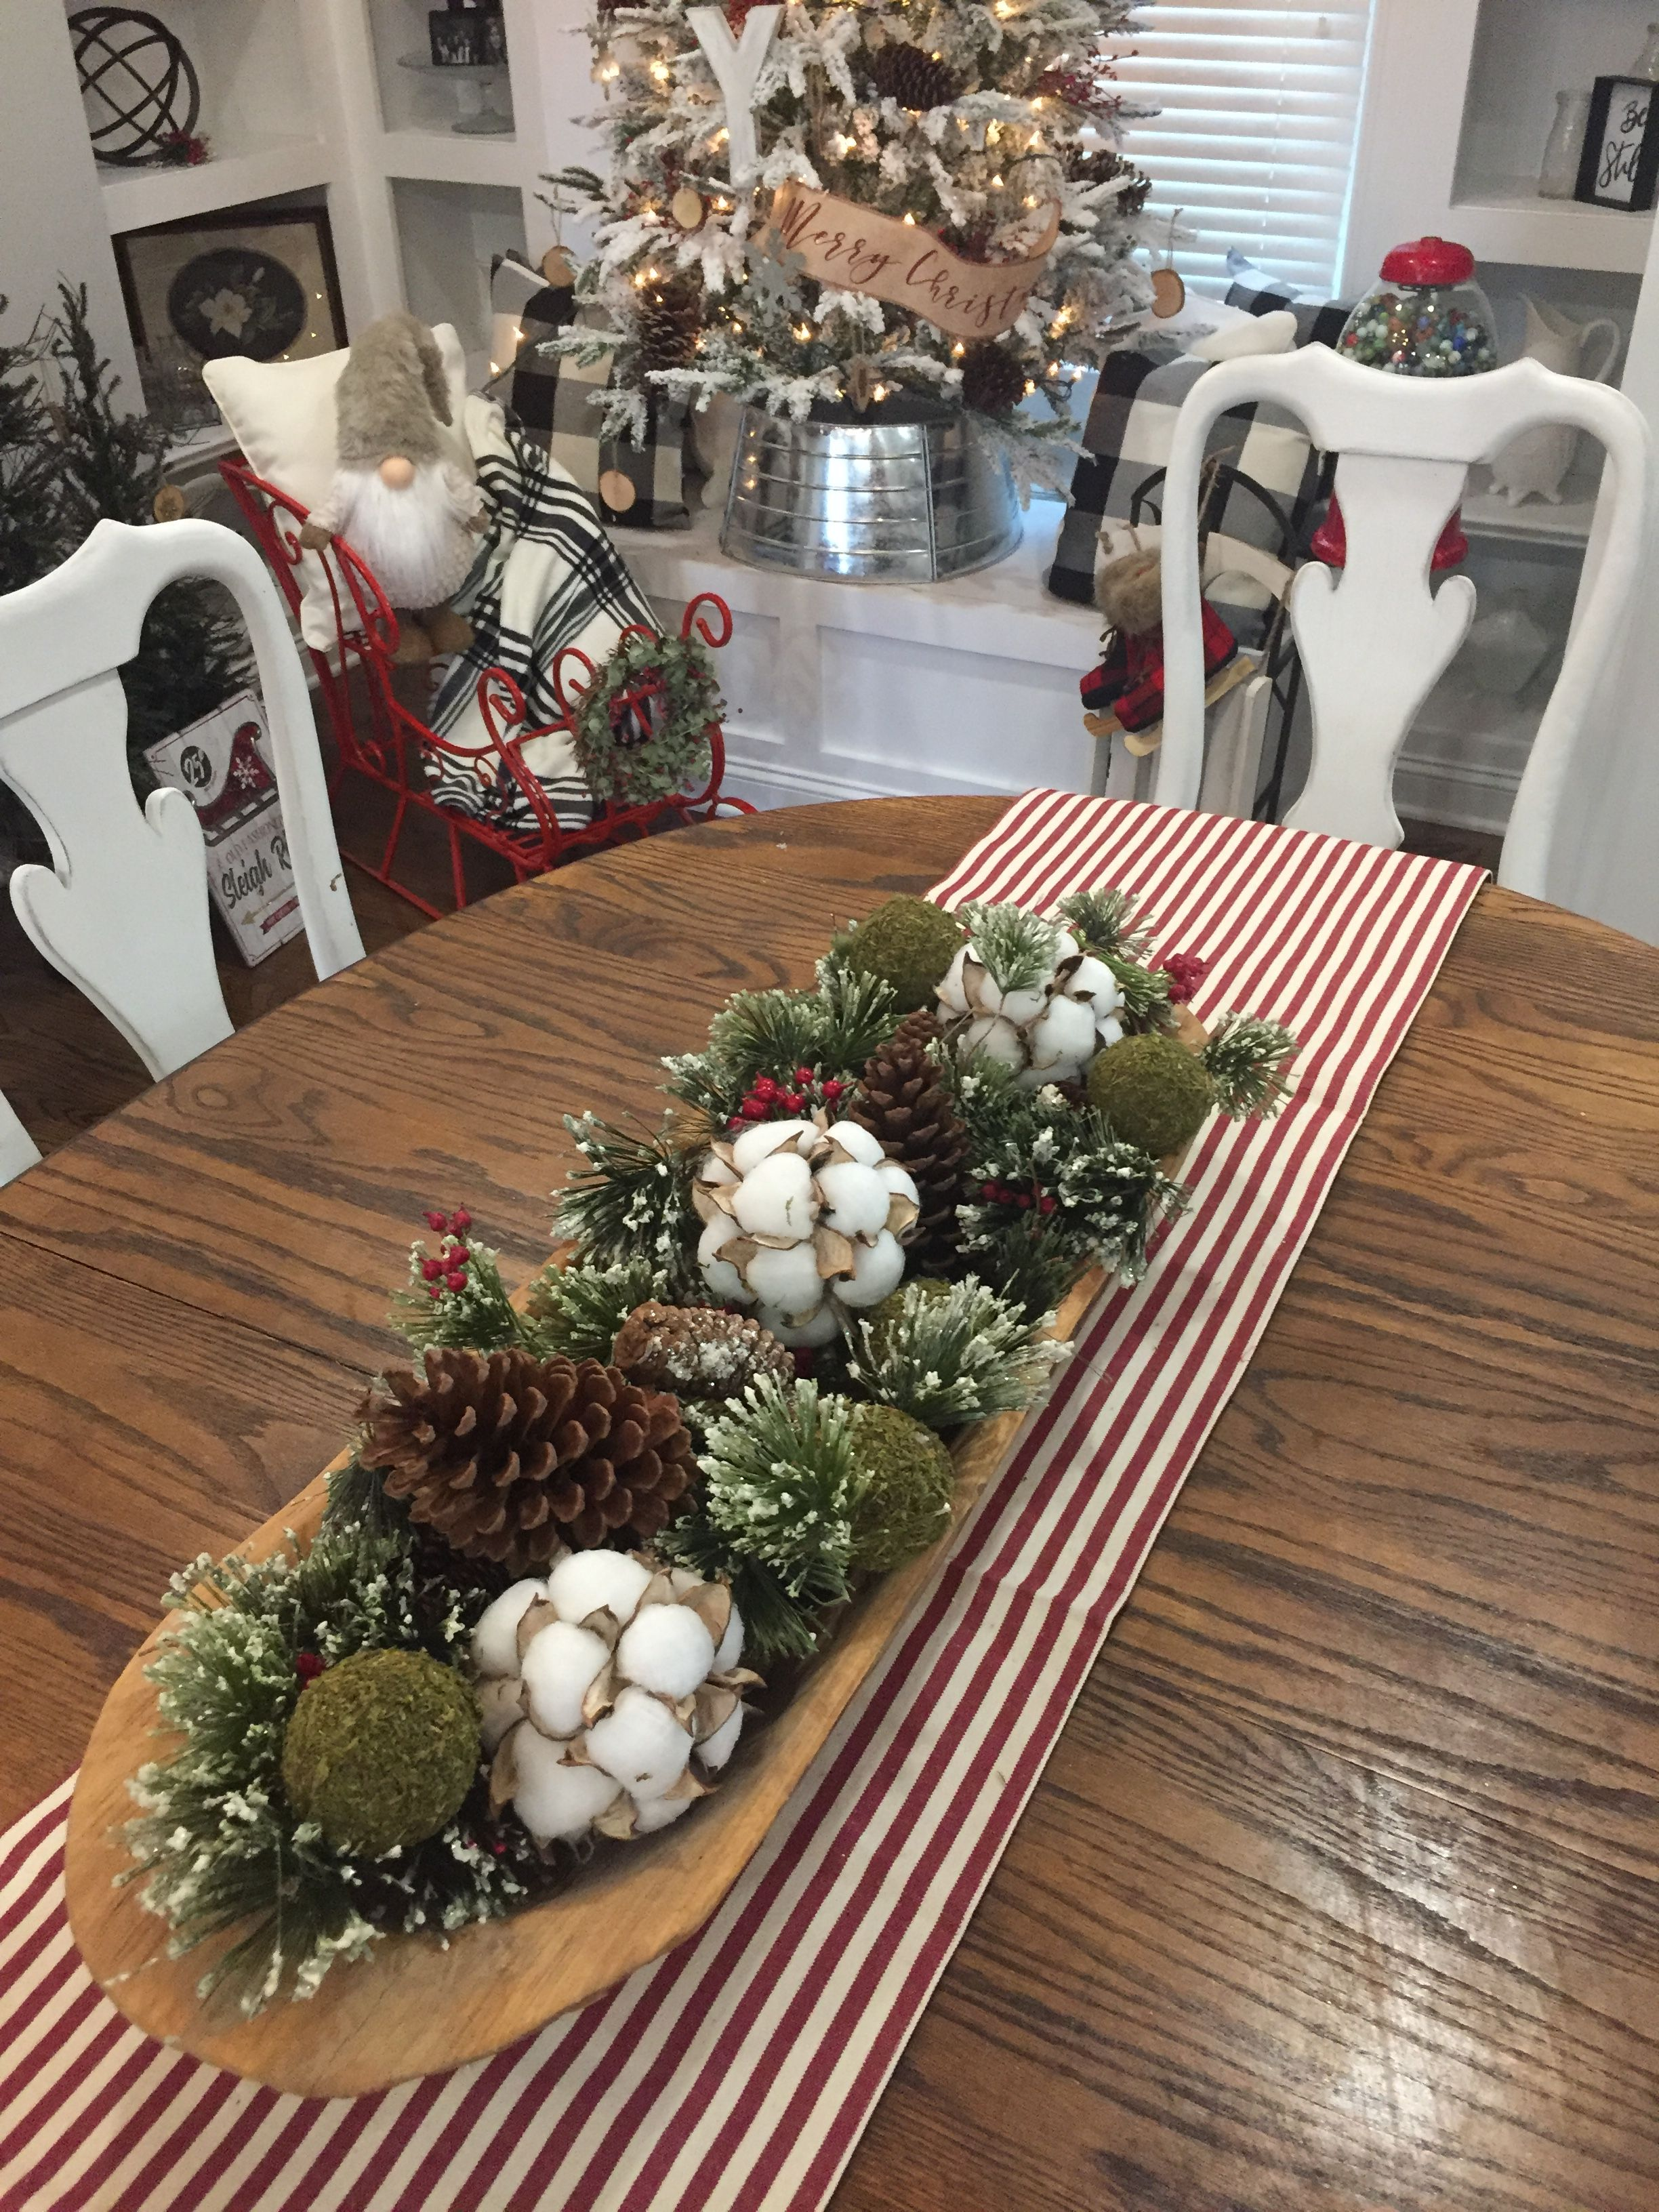 Pin By Marvelisdreyer On Farmhouse Christmas Christmas Dining Room Table Christmas Table Centerpieces Christmas Bowl Decorations